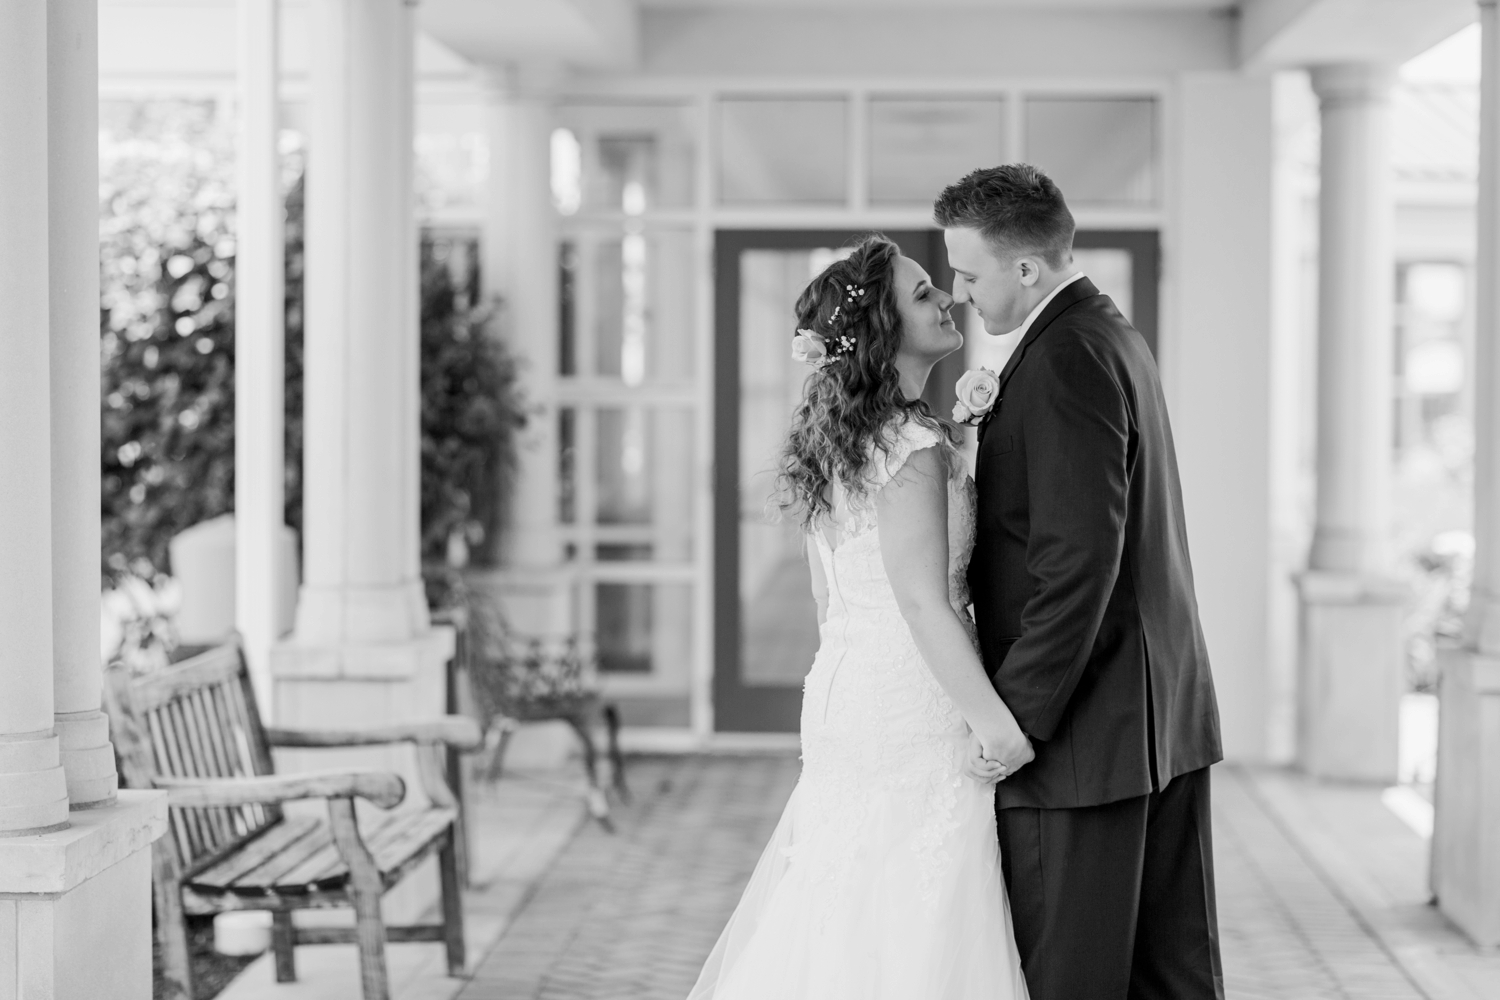 Community_Life_Center_Indianapolis_Indiana_Wedding_Photographer_Chloe_Luka_Photography_6878.jpg